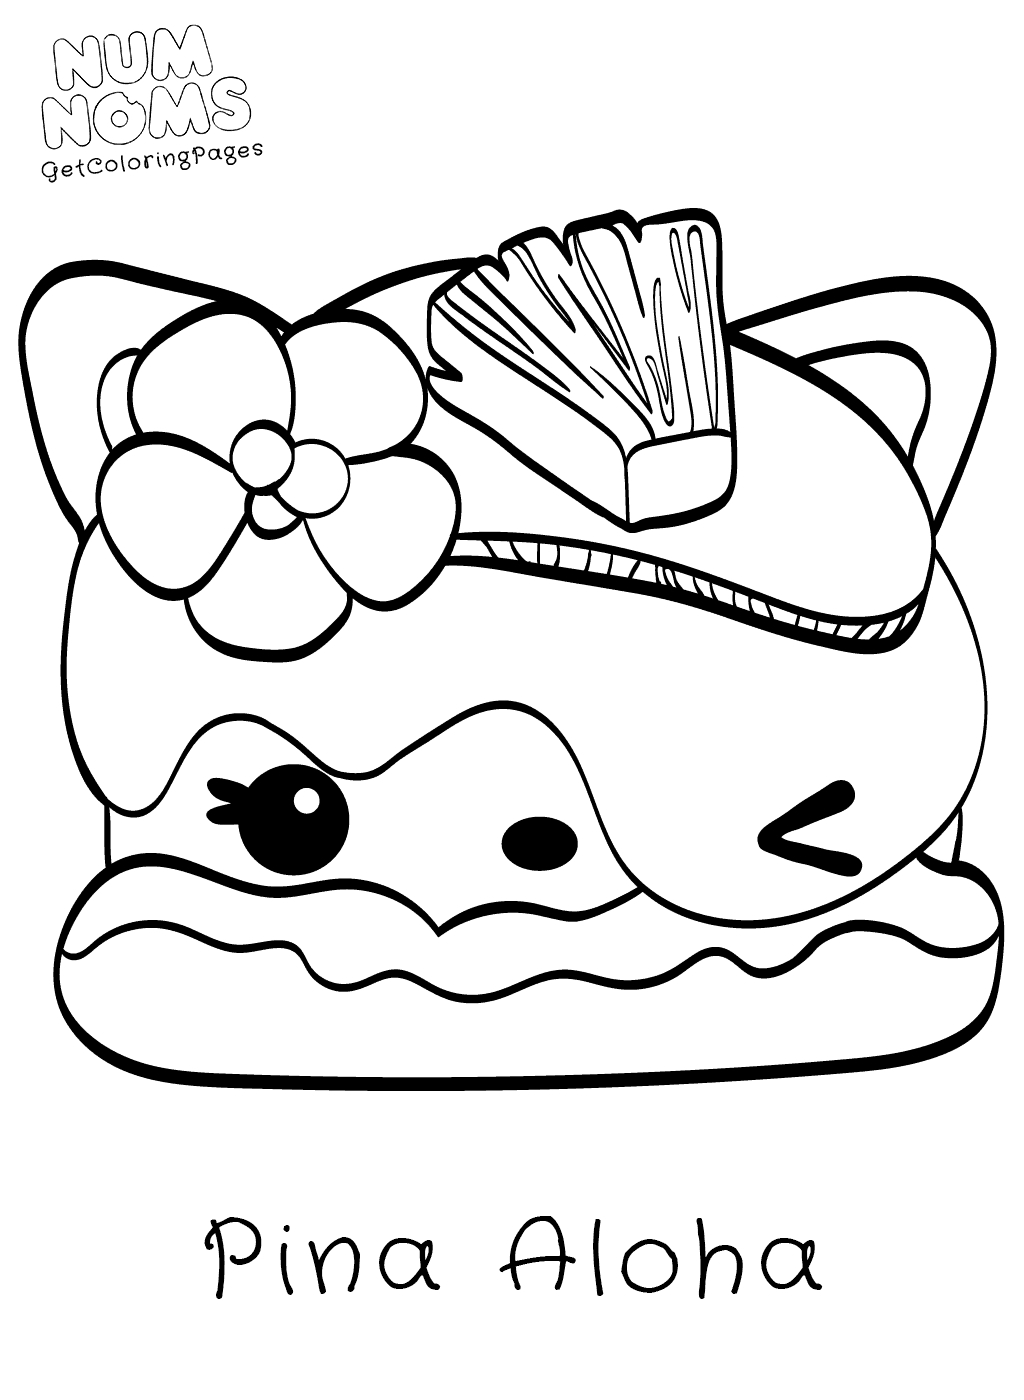 num noms coloring pages - how to draw billy banana from num noms coloring page num noms